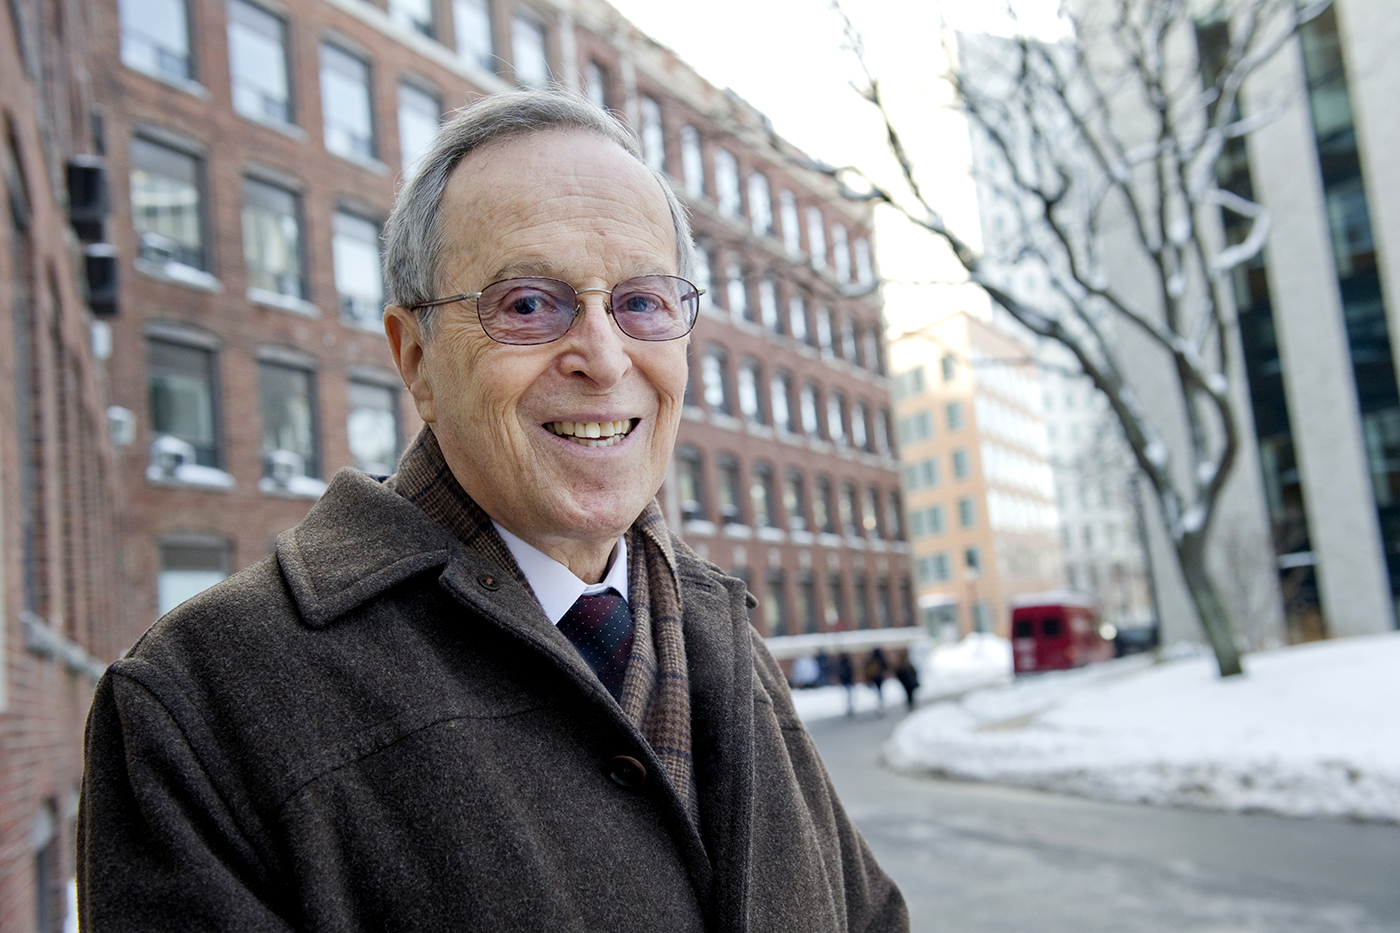 Remembering Harlan Lane, Northeastern professor and tireless advocate for the Deaf community